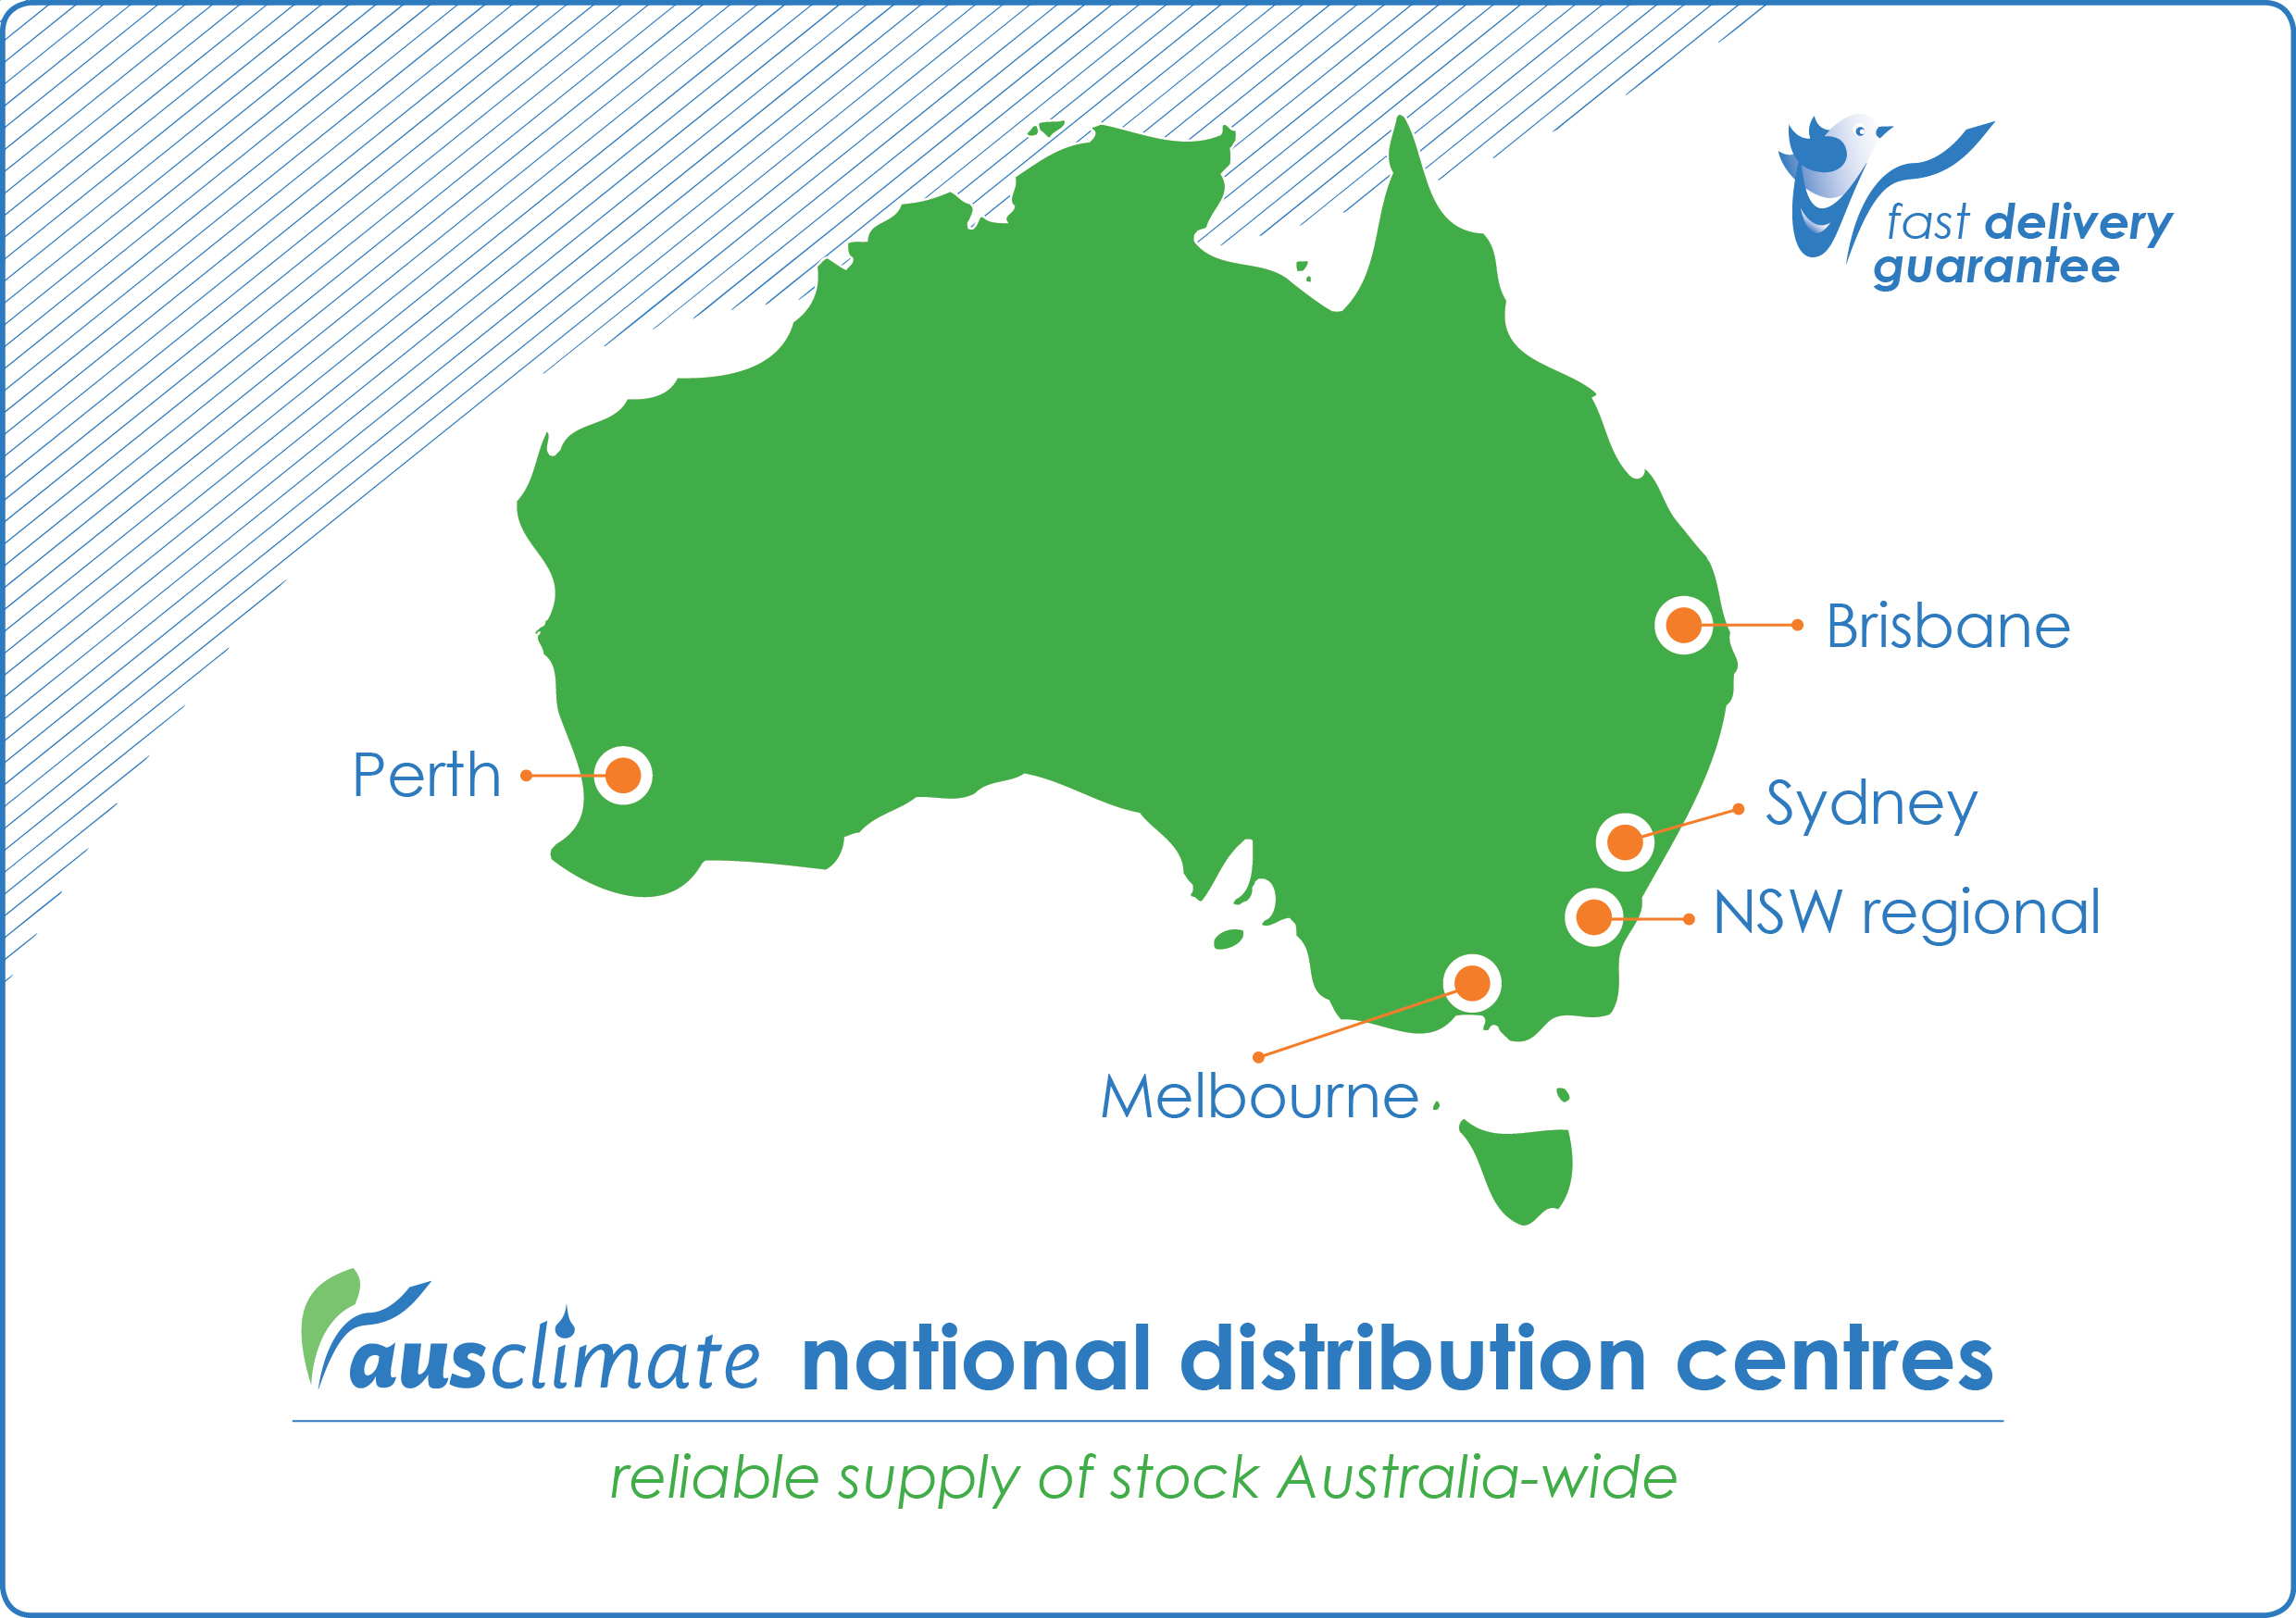 Ausclimate National Distribution Centres